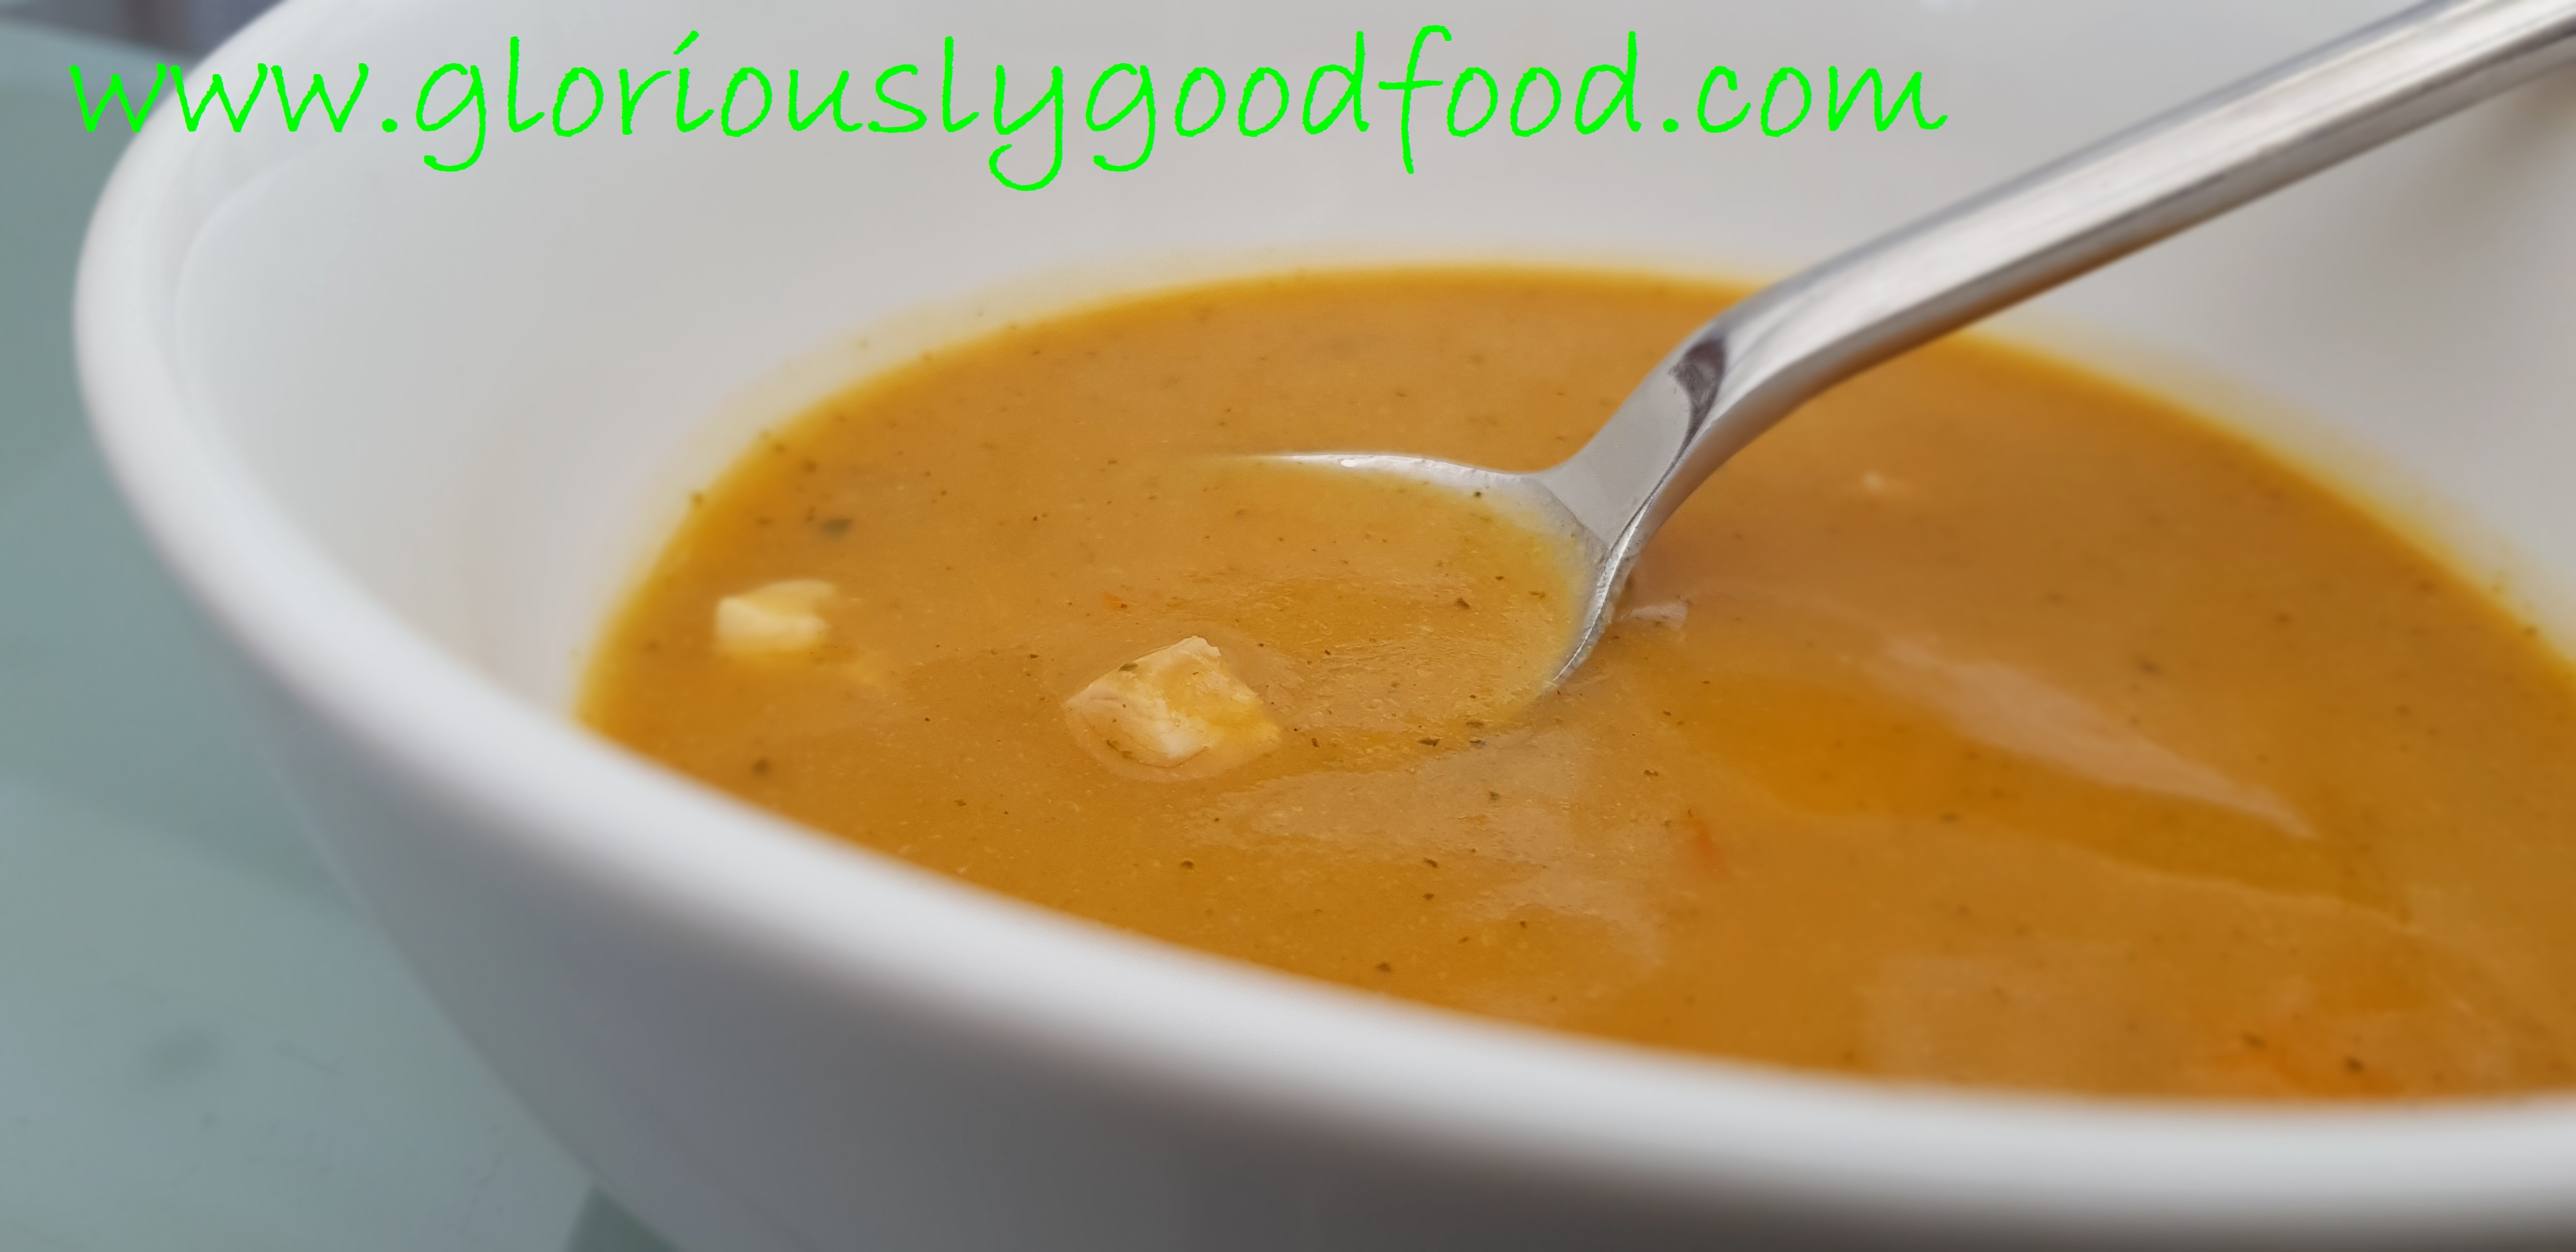 Hearty vegetable soup with tomatoes and chicken - gloriouslygoodfood.com